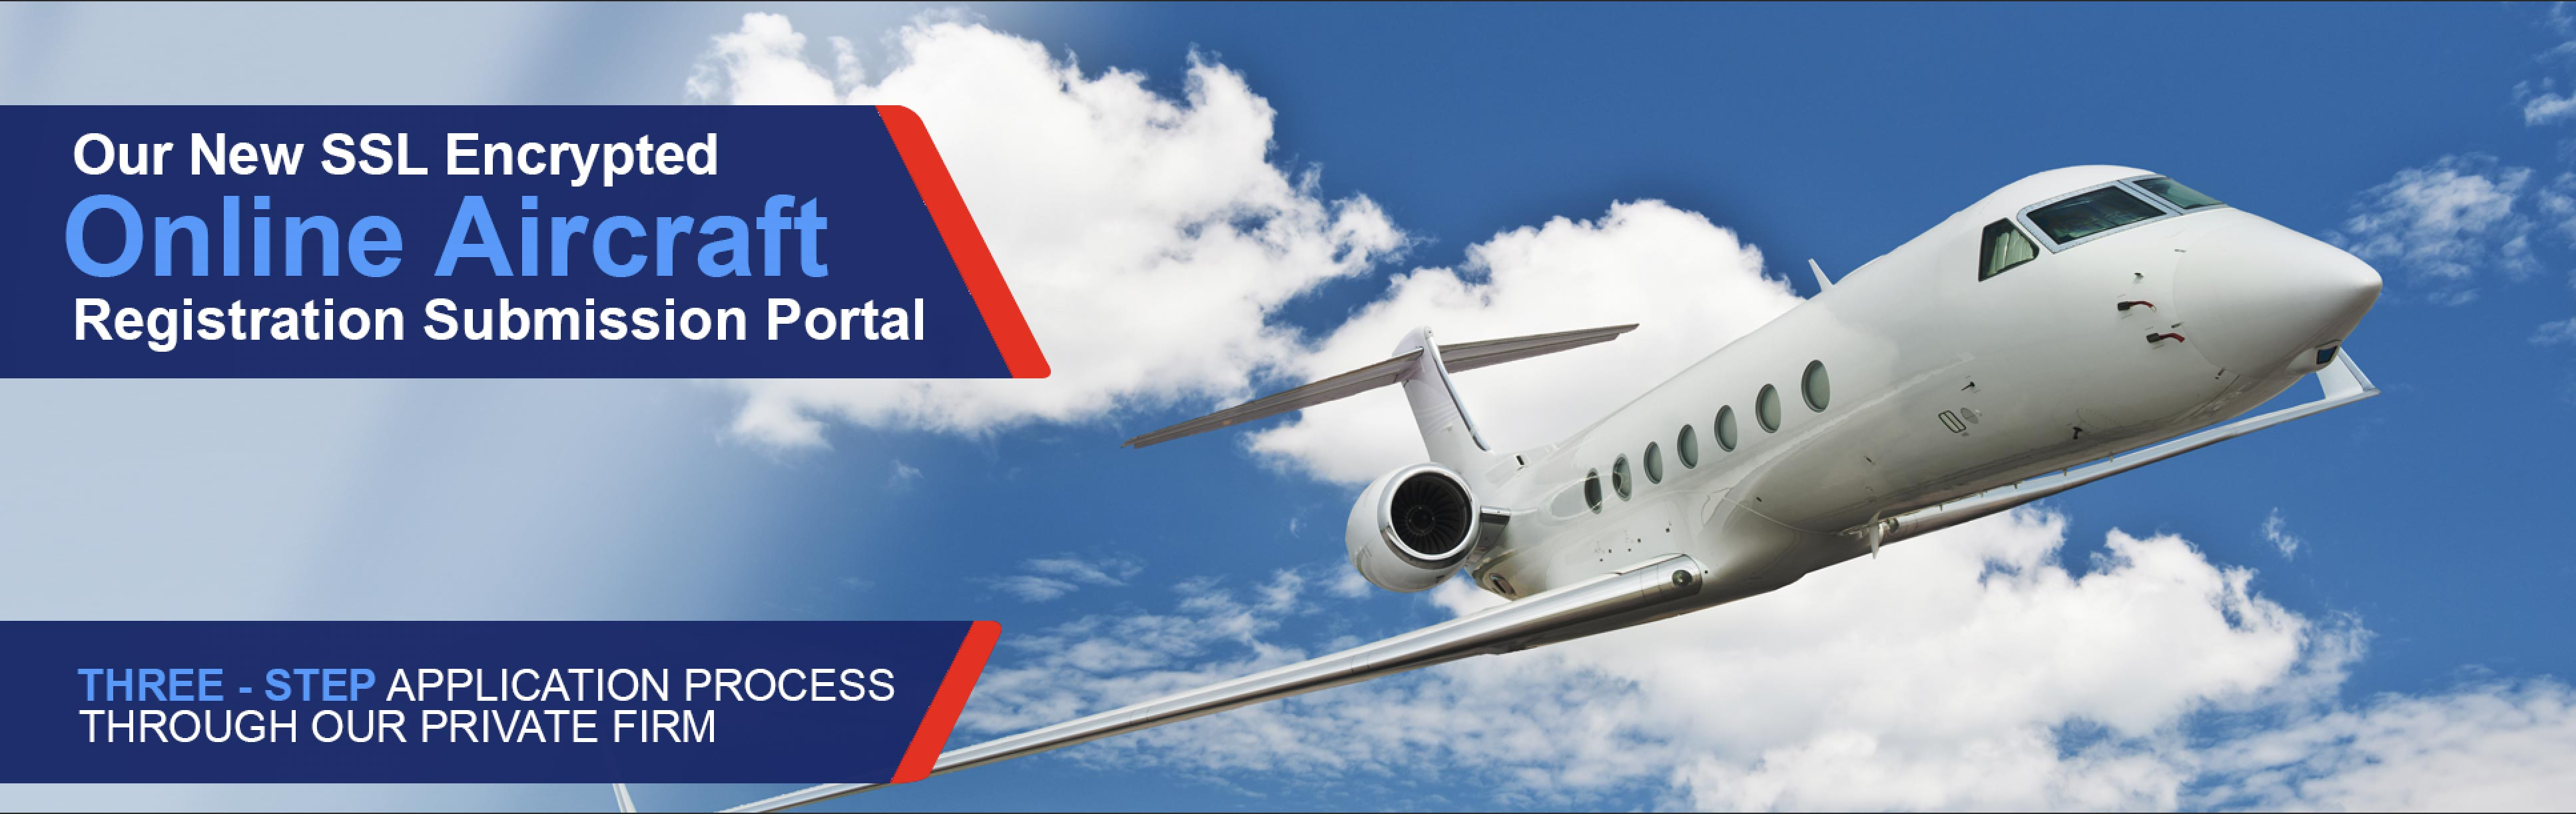 Online Aircraft Registration Submission Portal | N-Number